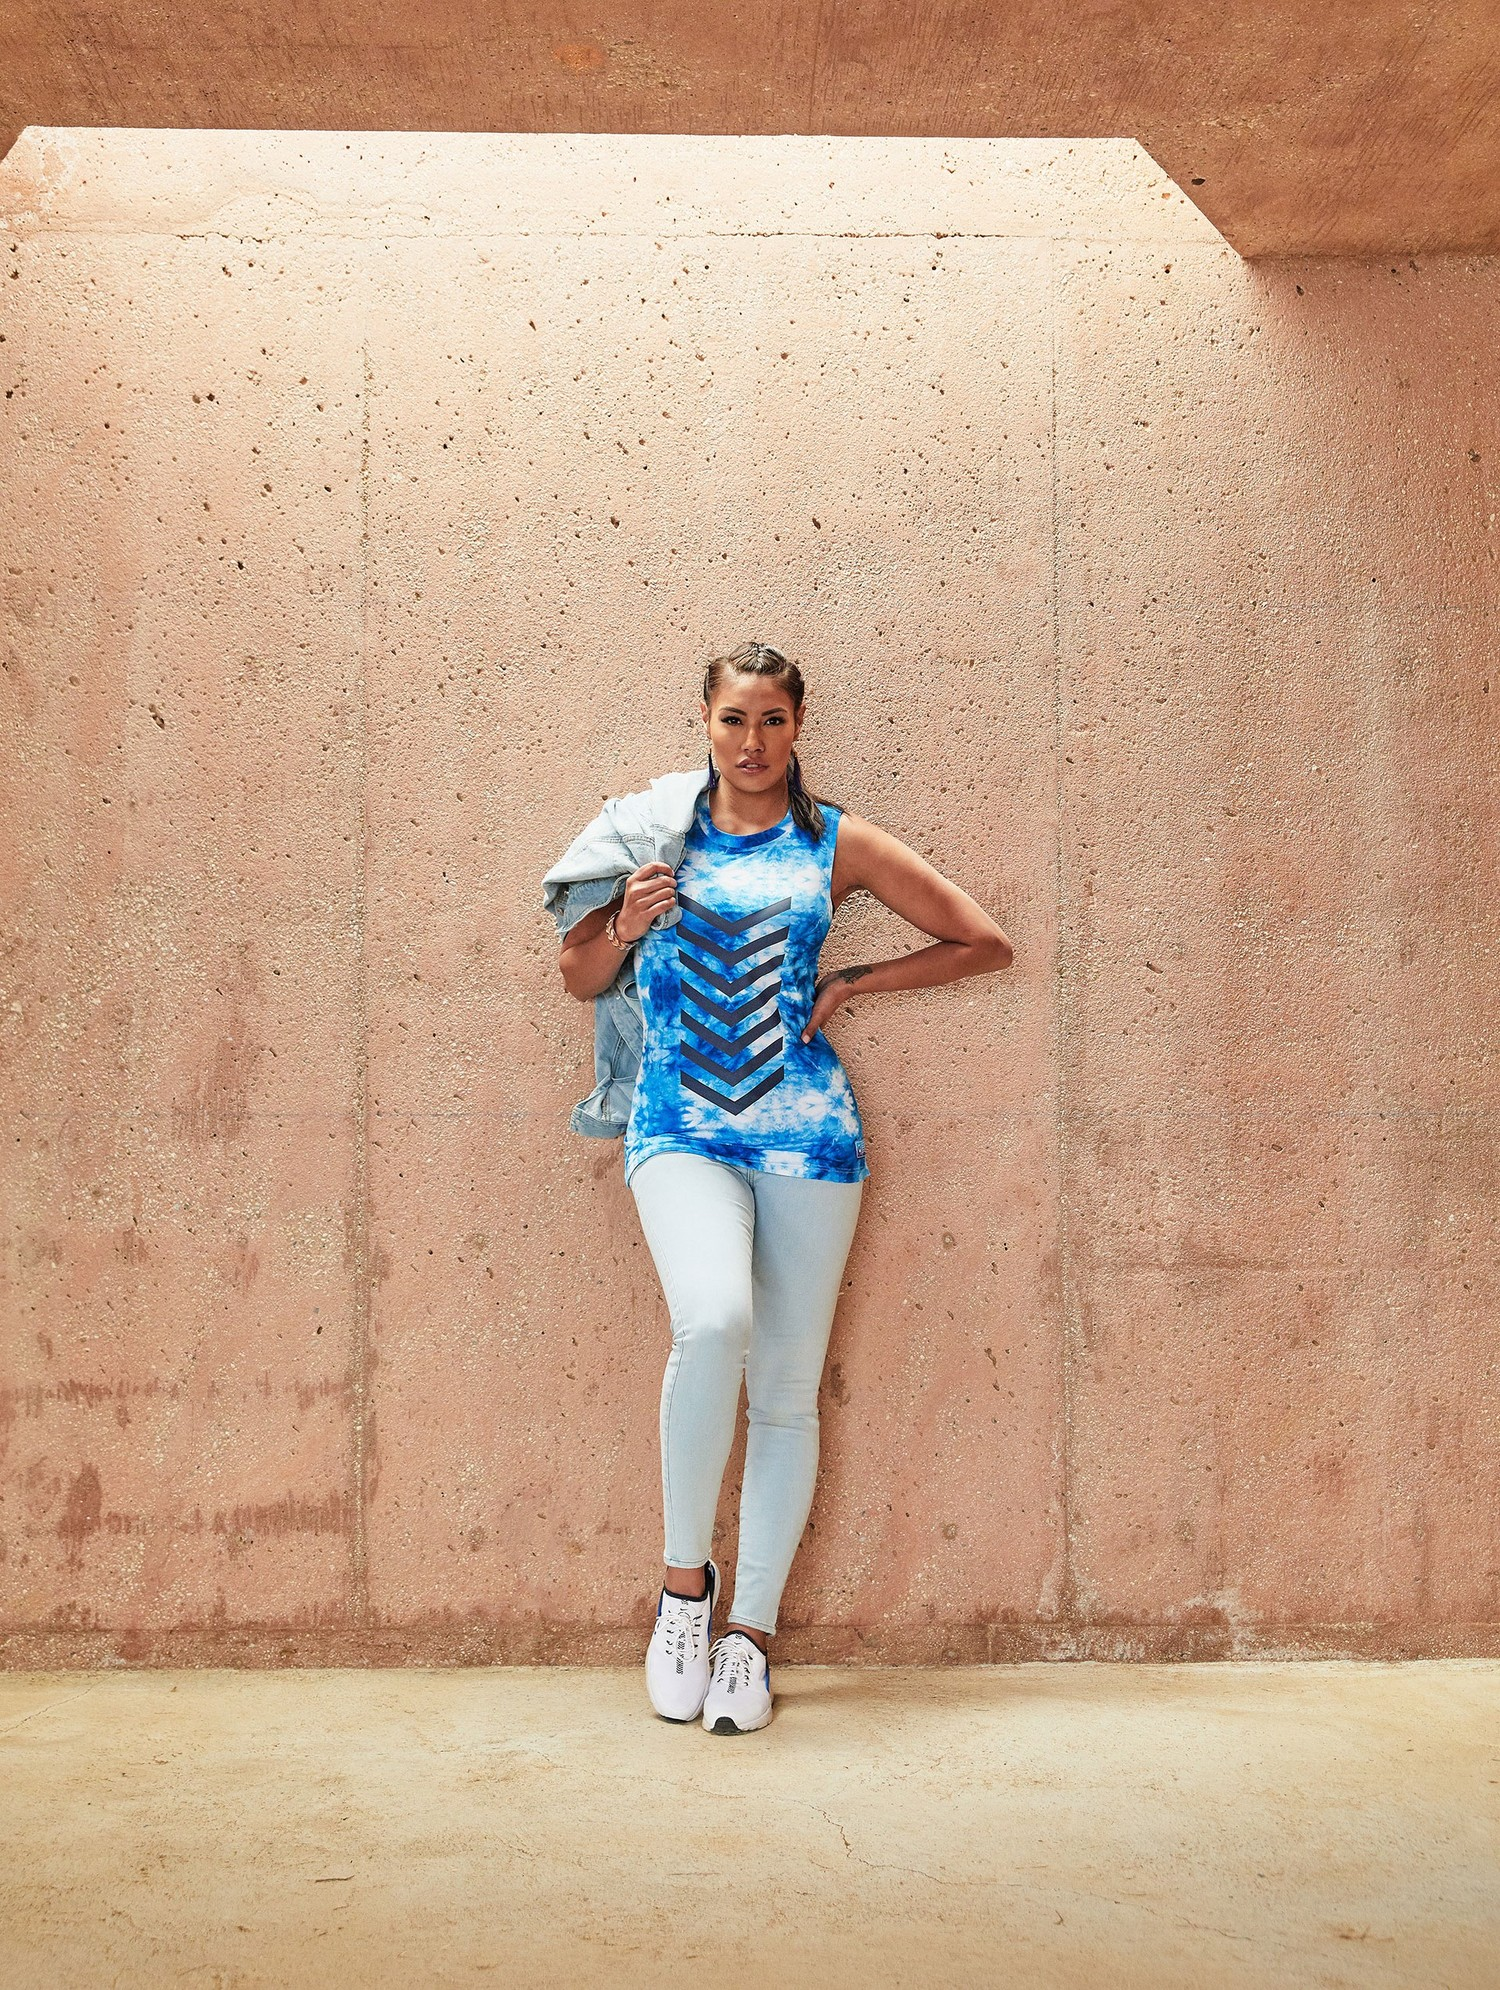 nike n7 collection womens 2018 - WearTesters 39a75e90b